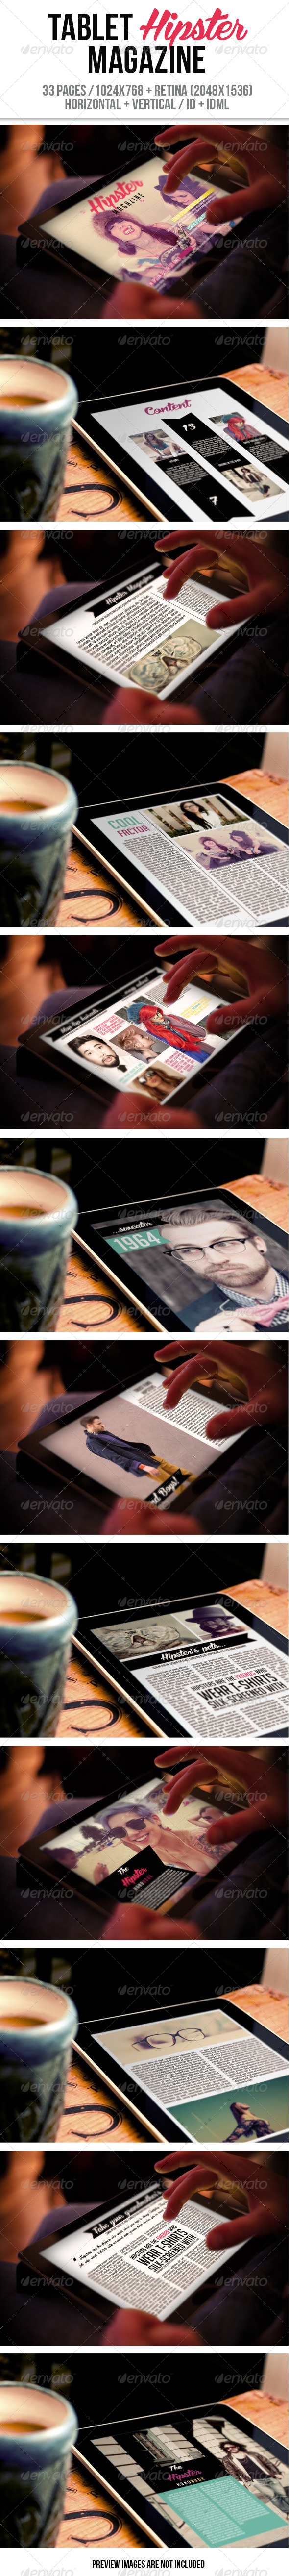 GraphicRiver Tablet Hipster Magazine 6278015